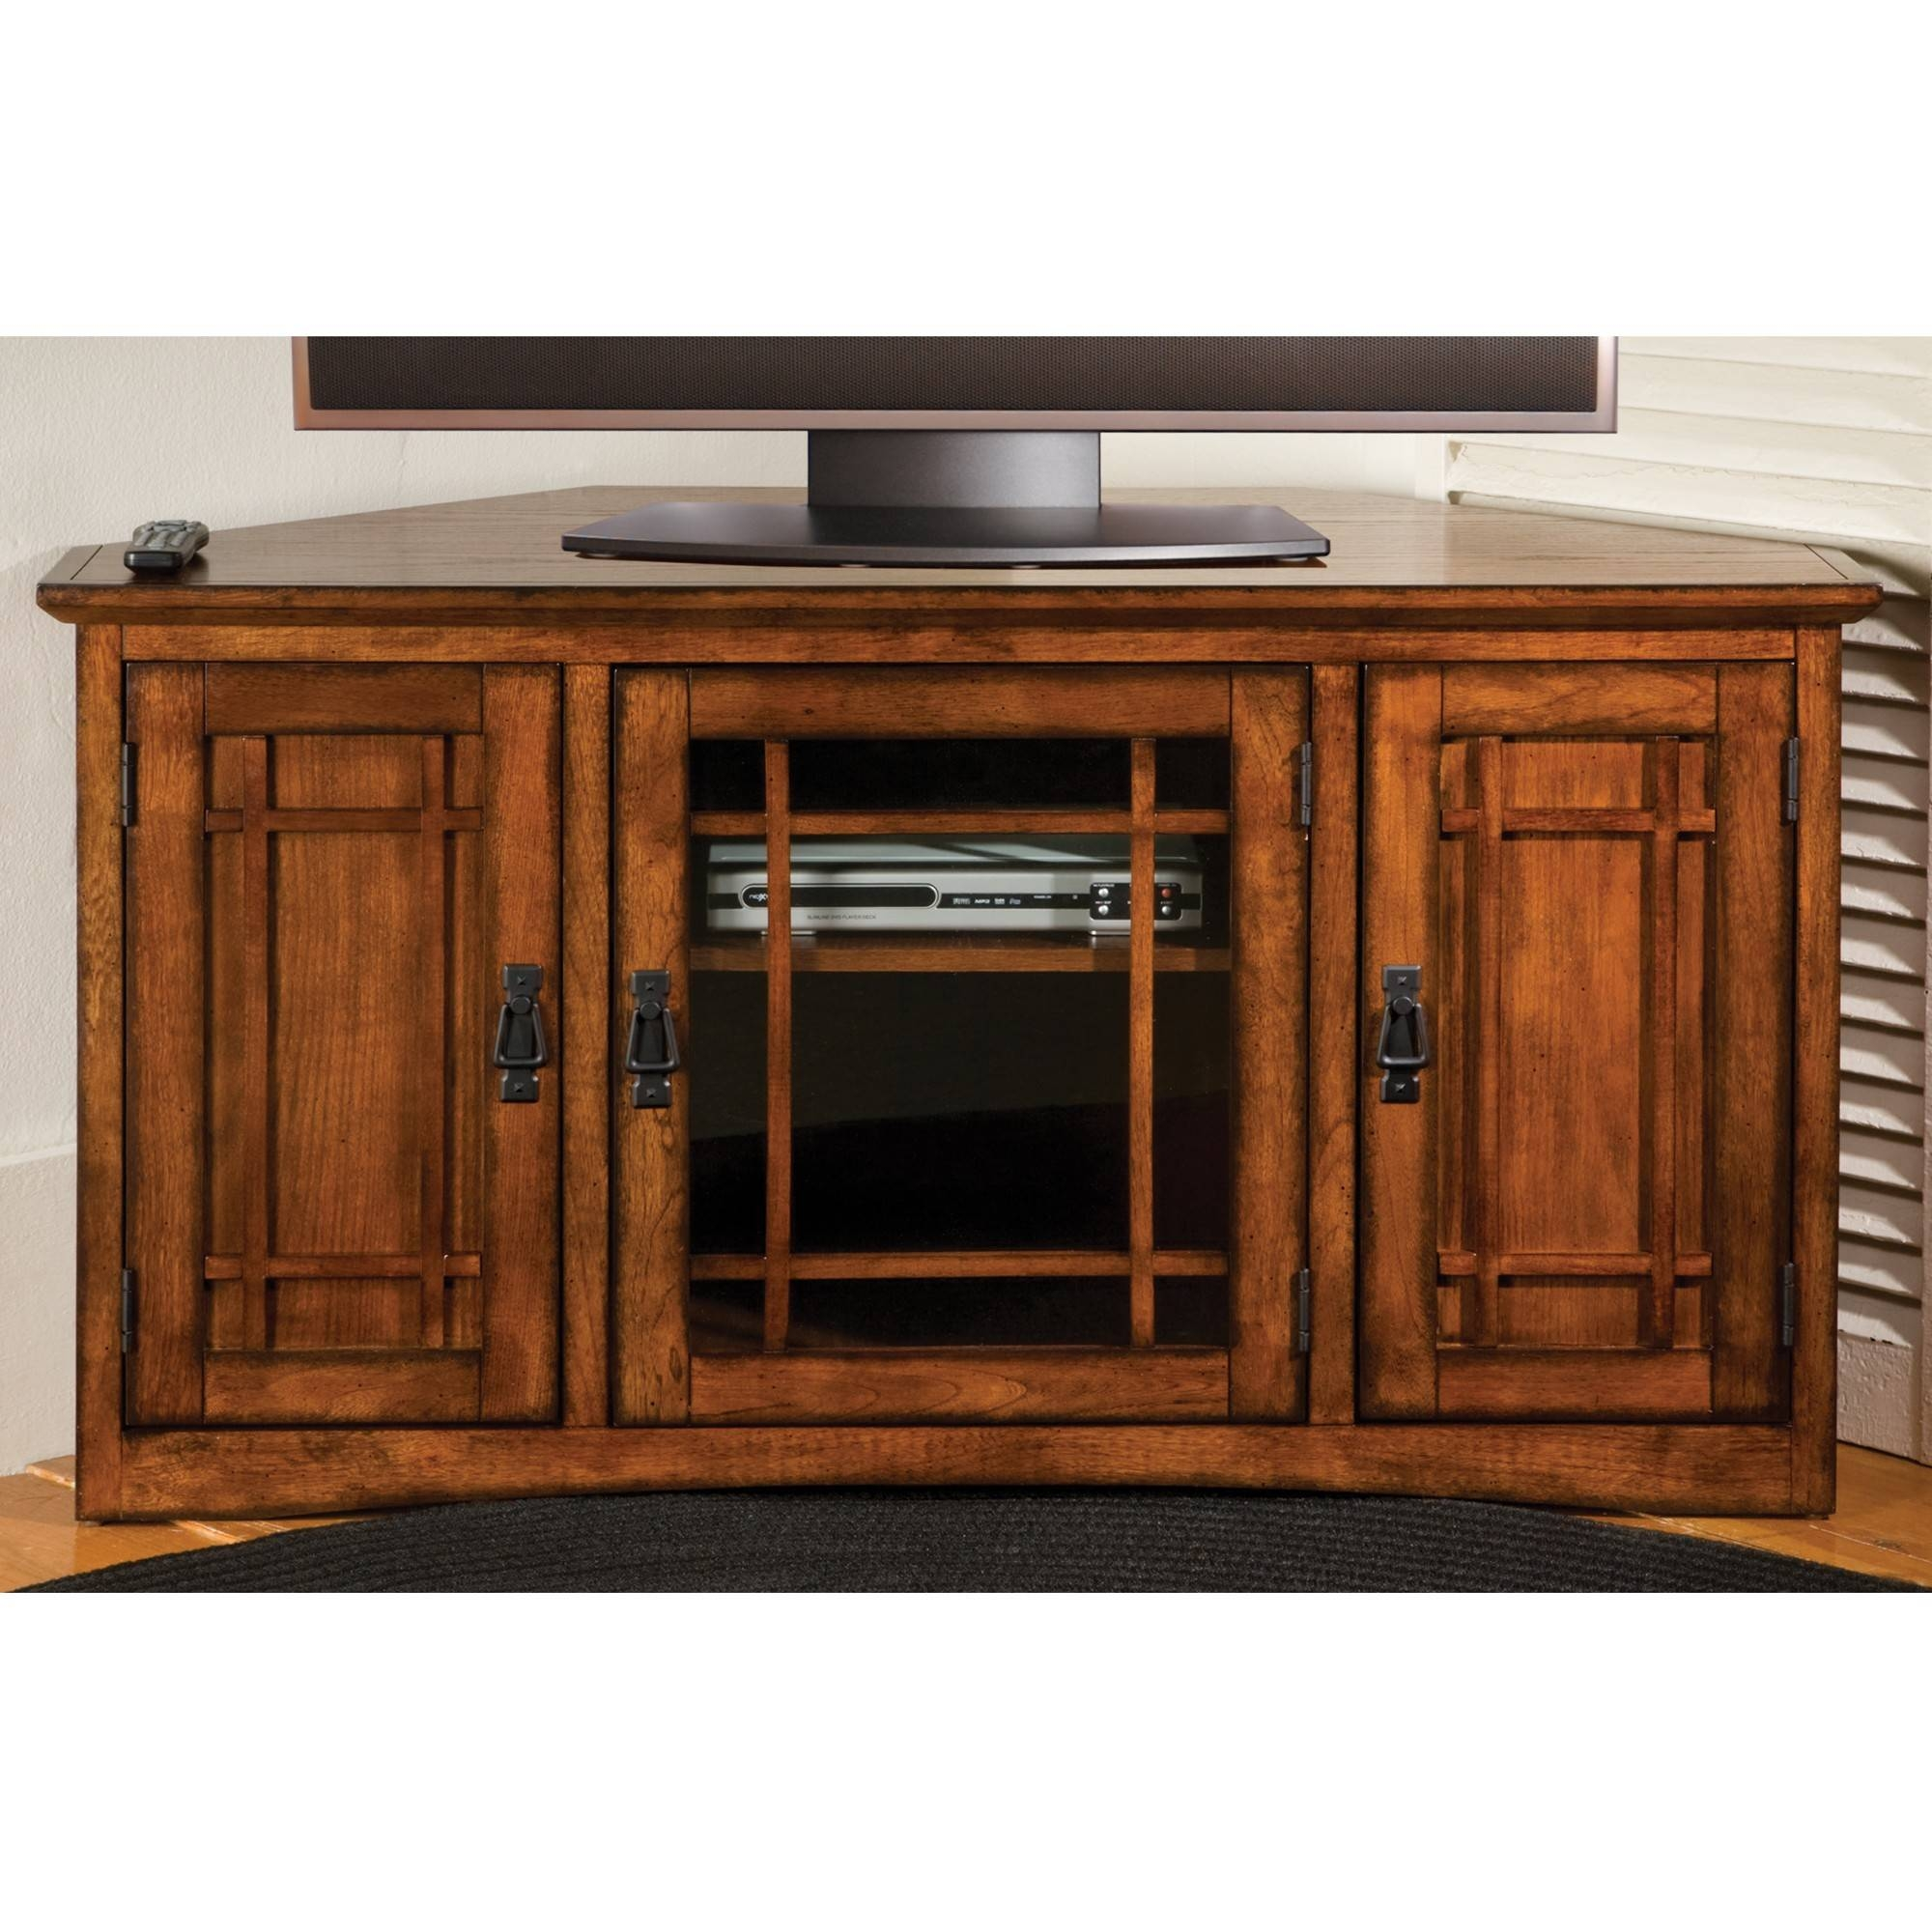 Mission Corner Tv Cabinet | Sturbridge Yankee Workshop within Corner Tv Unit With Glass Doors (Image 9 of 15)